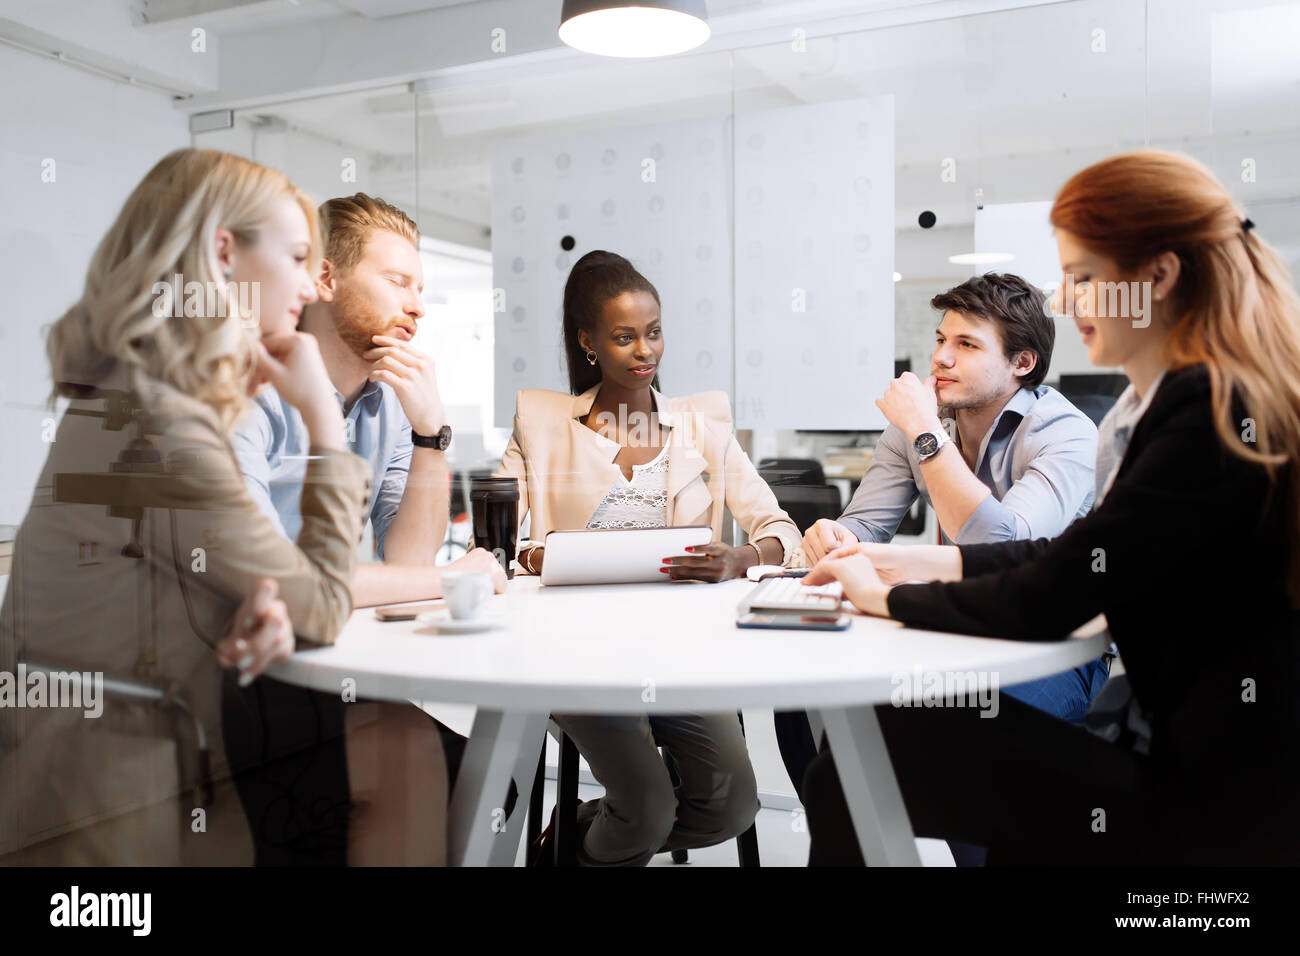 Group of business people sitting at desk and discussing